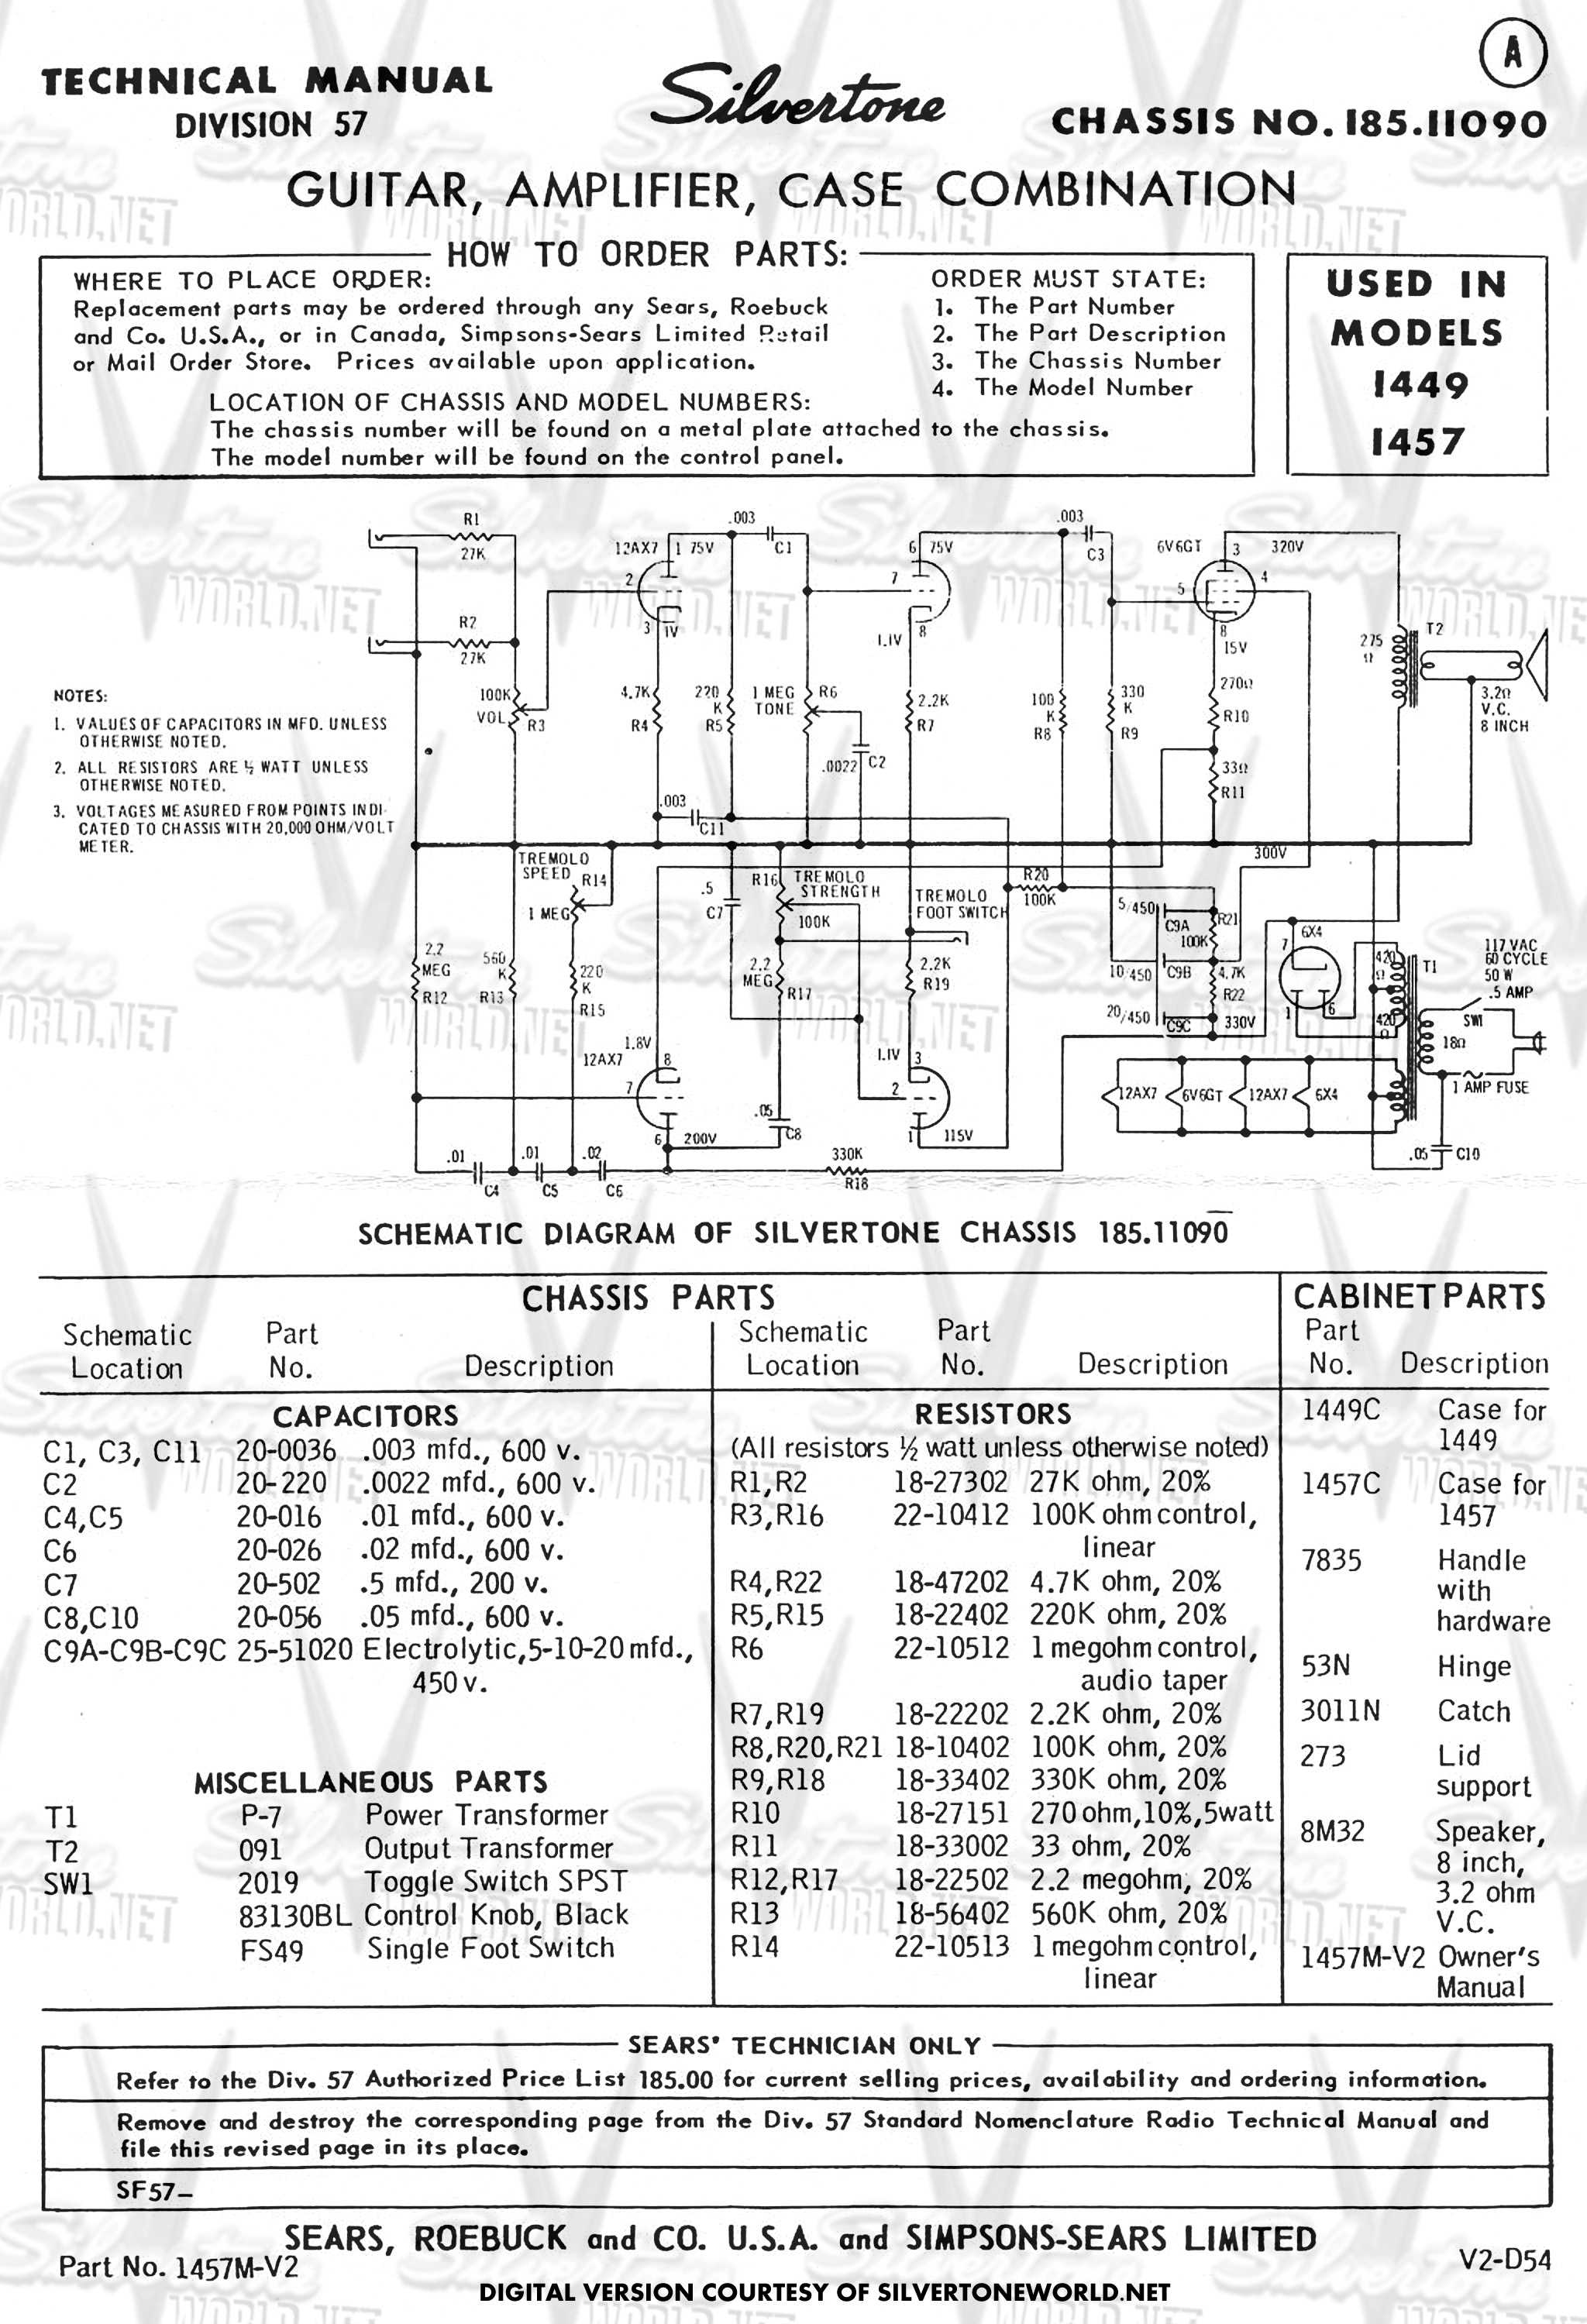 Jeep Wrangler Jk Oem Radio Rhb also 85 Chevy C30 Fuse Box besides 1006827 Ecu Pinouts Needed Cts V besides S240154 additionally 2007 Vw Rabbit Wiper Relay Location. on cadillac wiring diagram